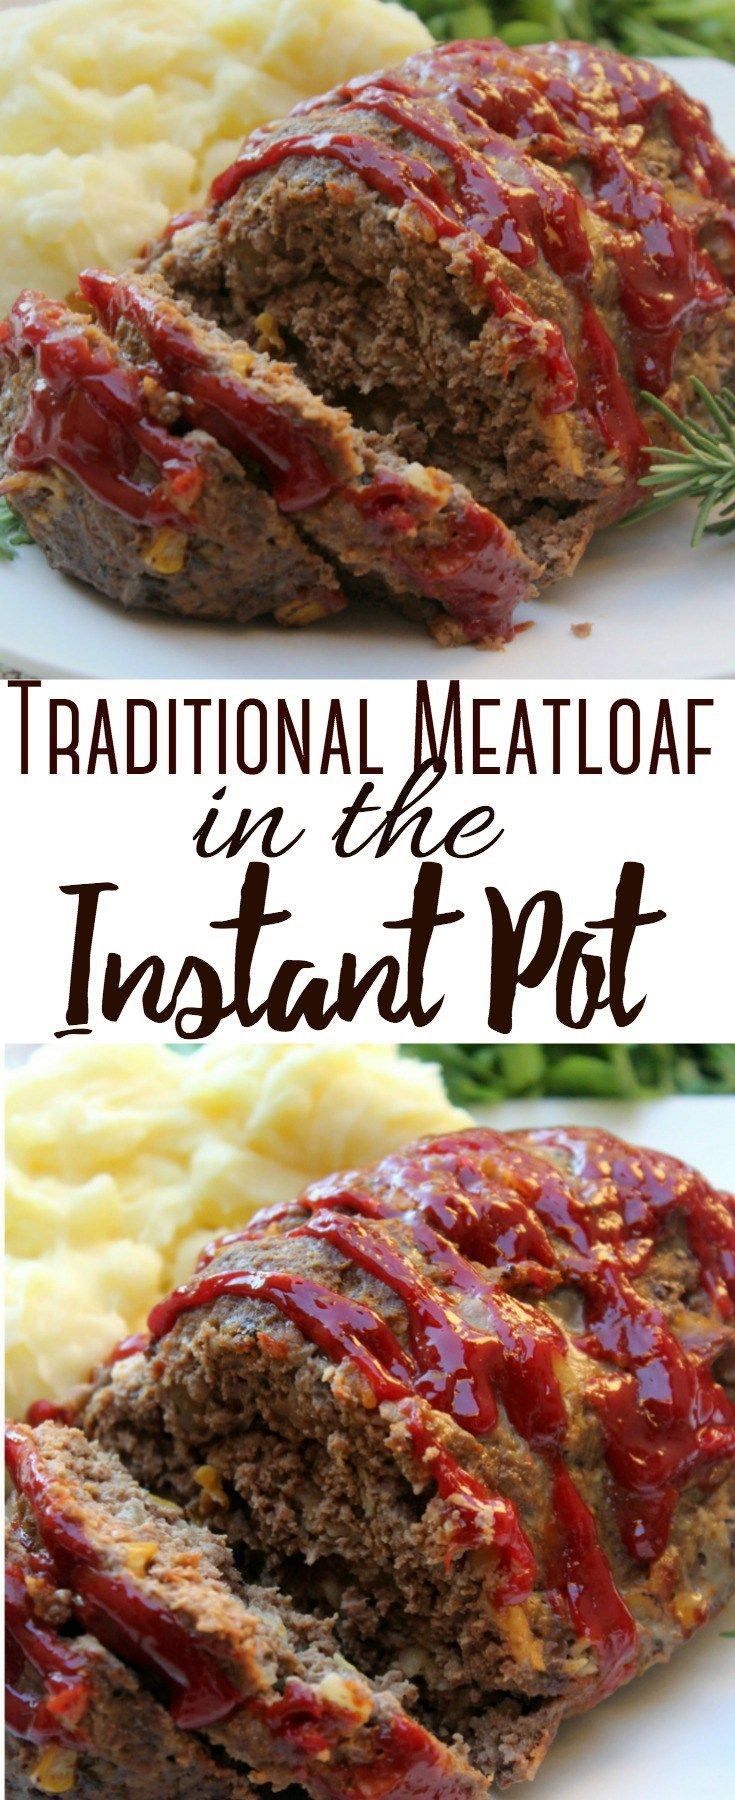 This Traditional Meatloaf Recipe Features Flavorful